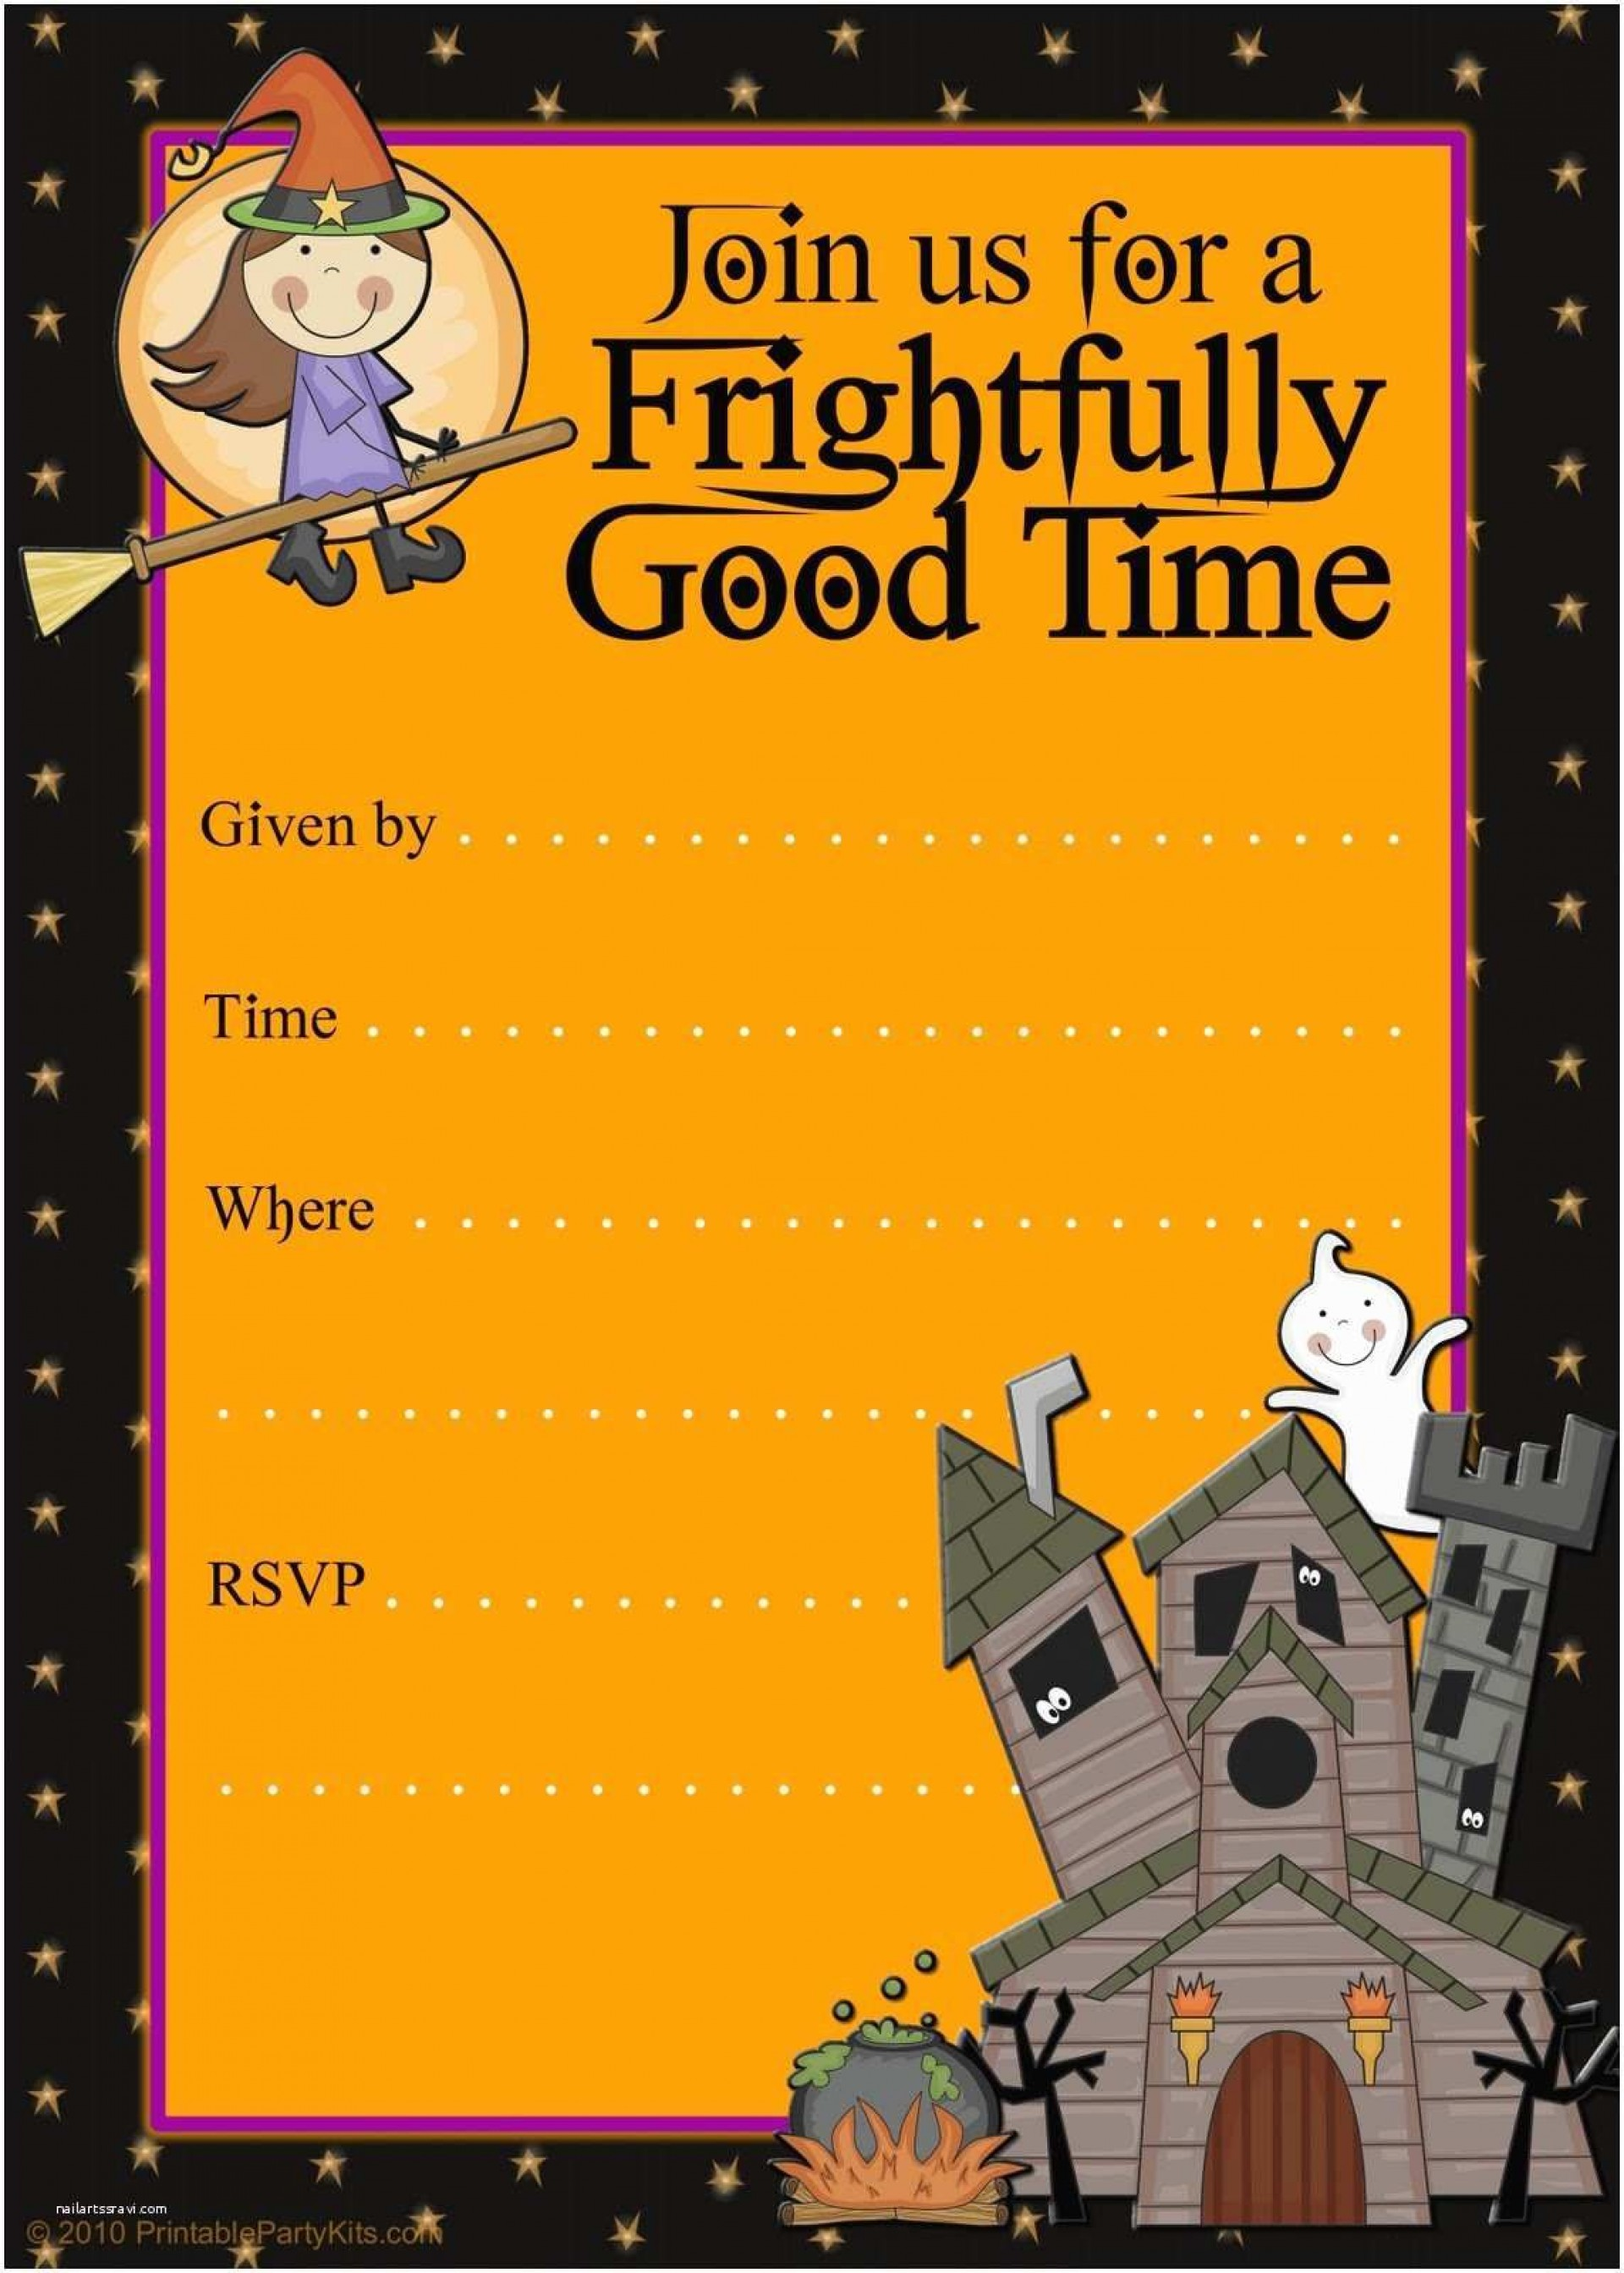 007 Magnificent Halloween Party Invitation Template Photo  Templates Scary Spooky1920